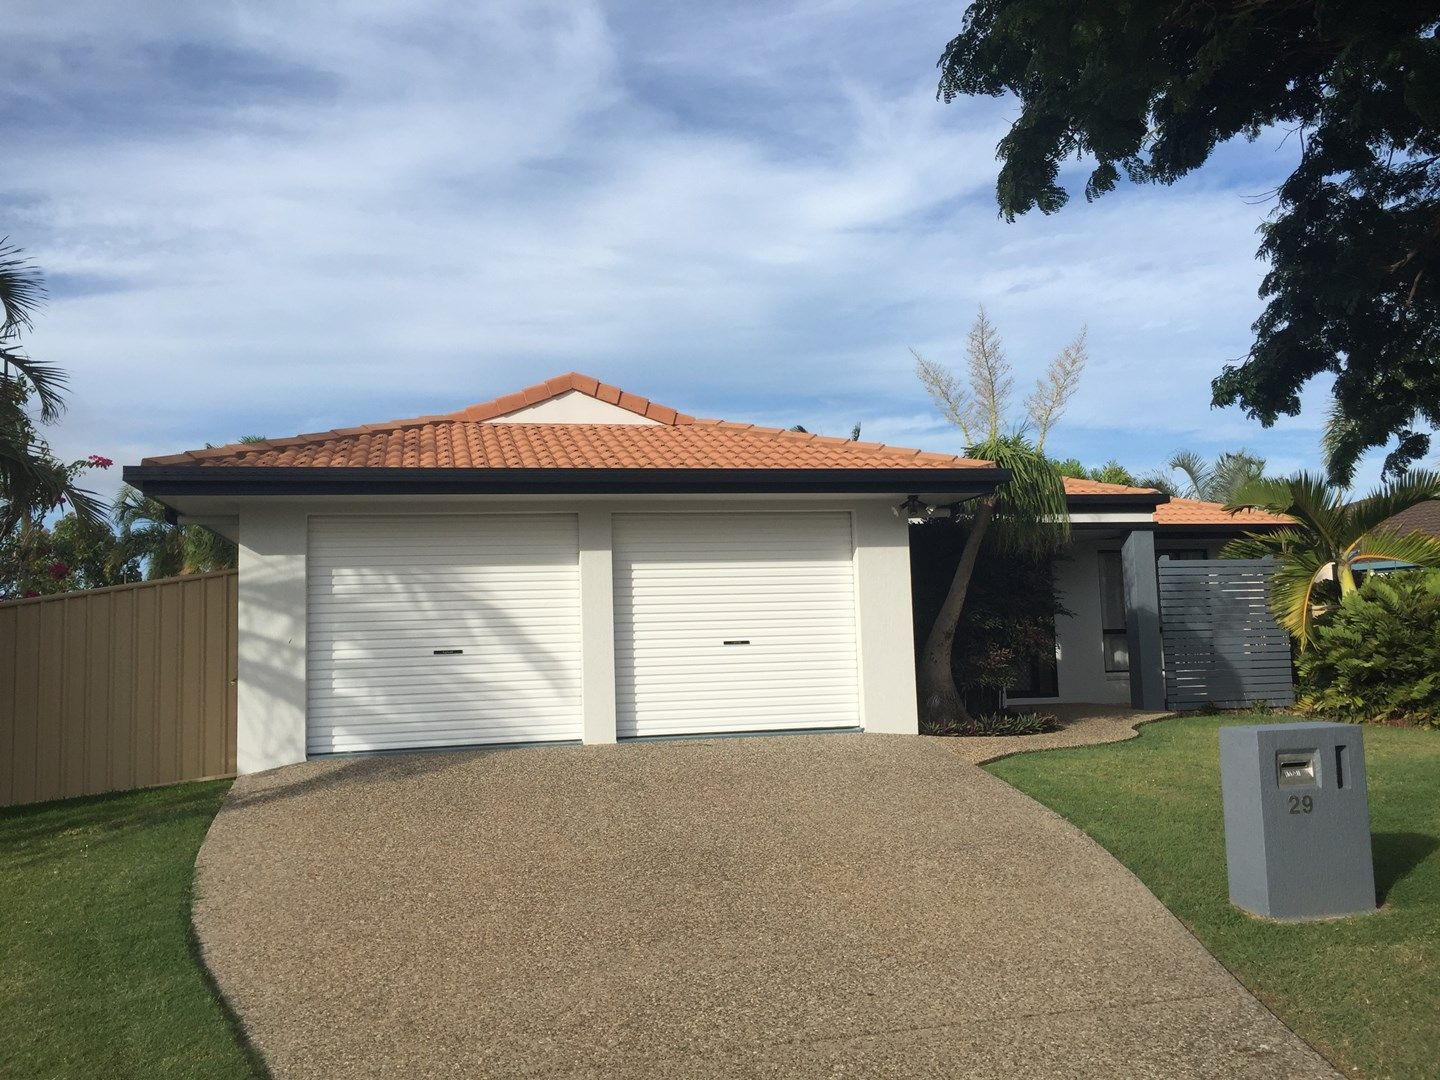 29 Antarctic street, Yeppoon QLD 4703, Image 0